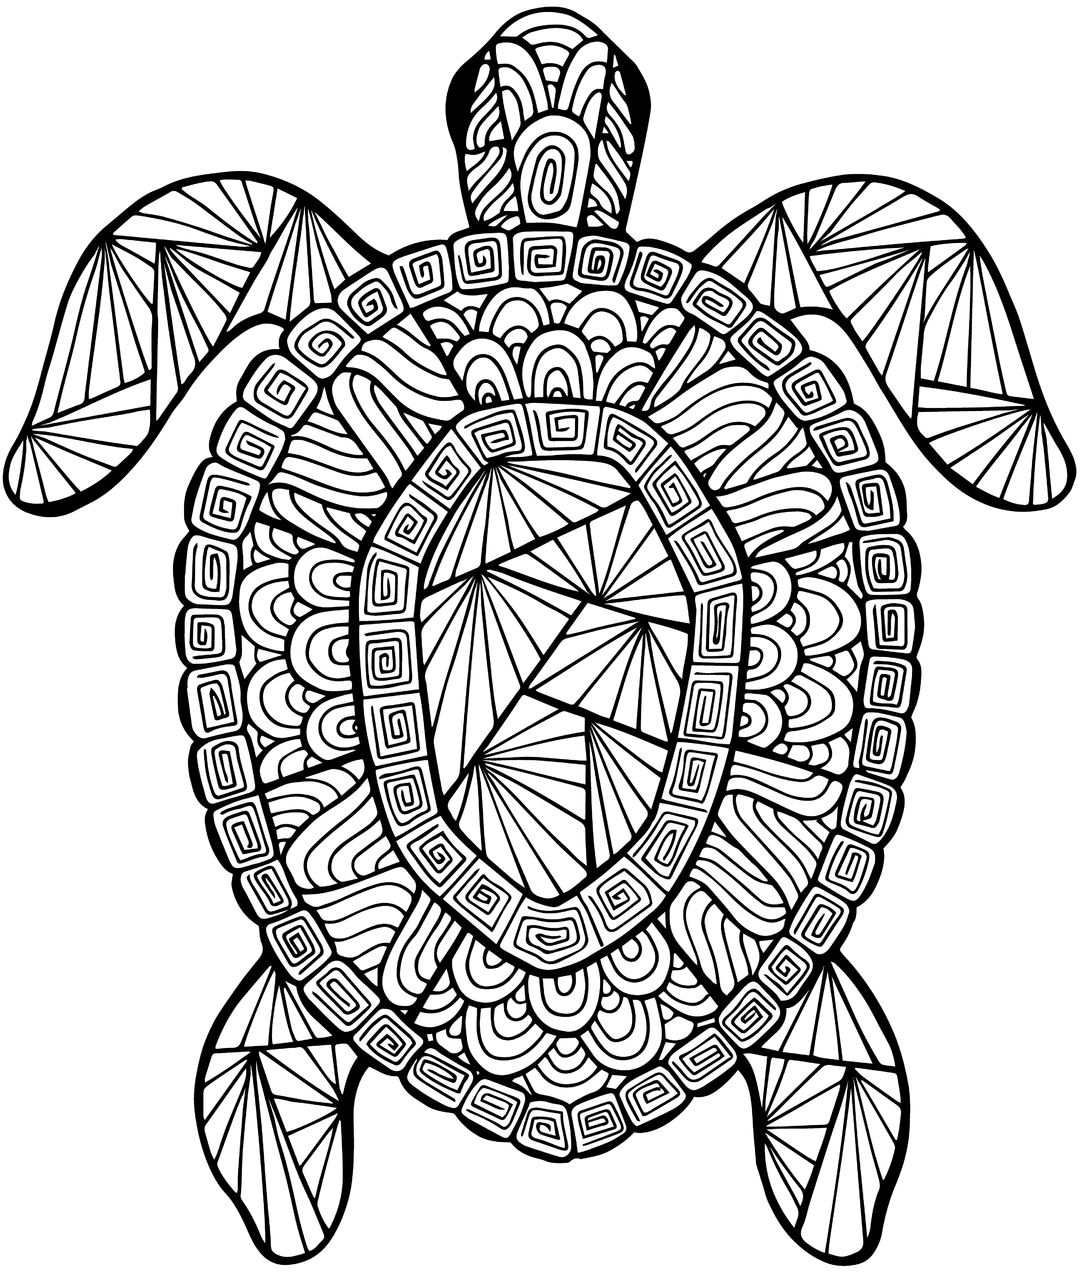 advanced adult coloring pages | This detailed sea turtle is part of our collection of ...